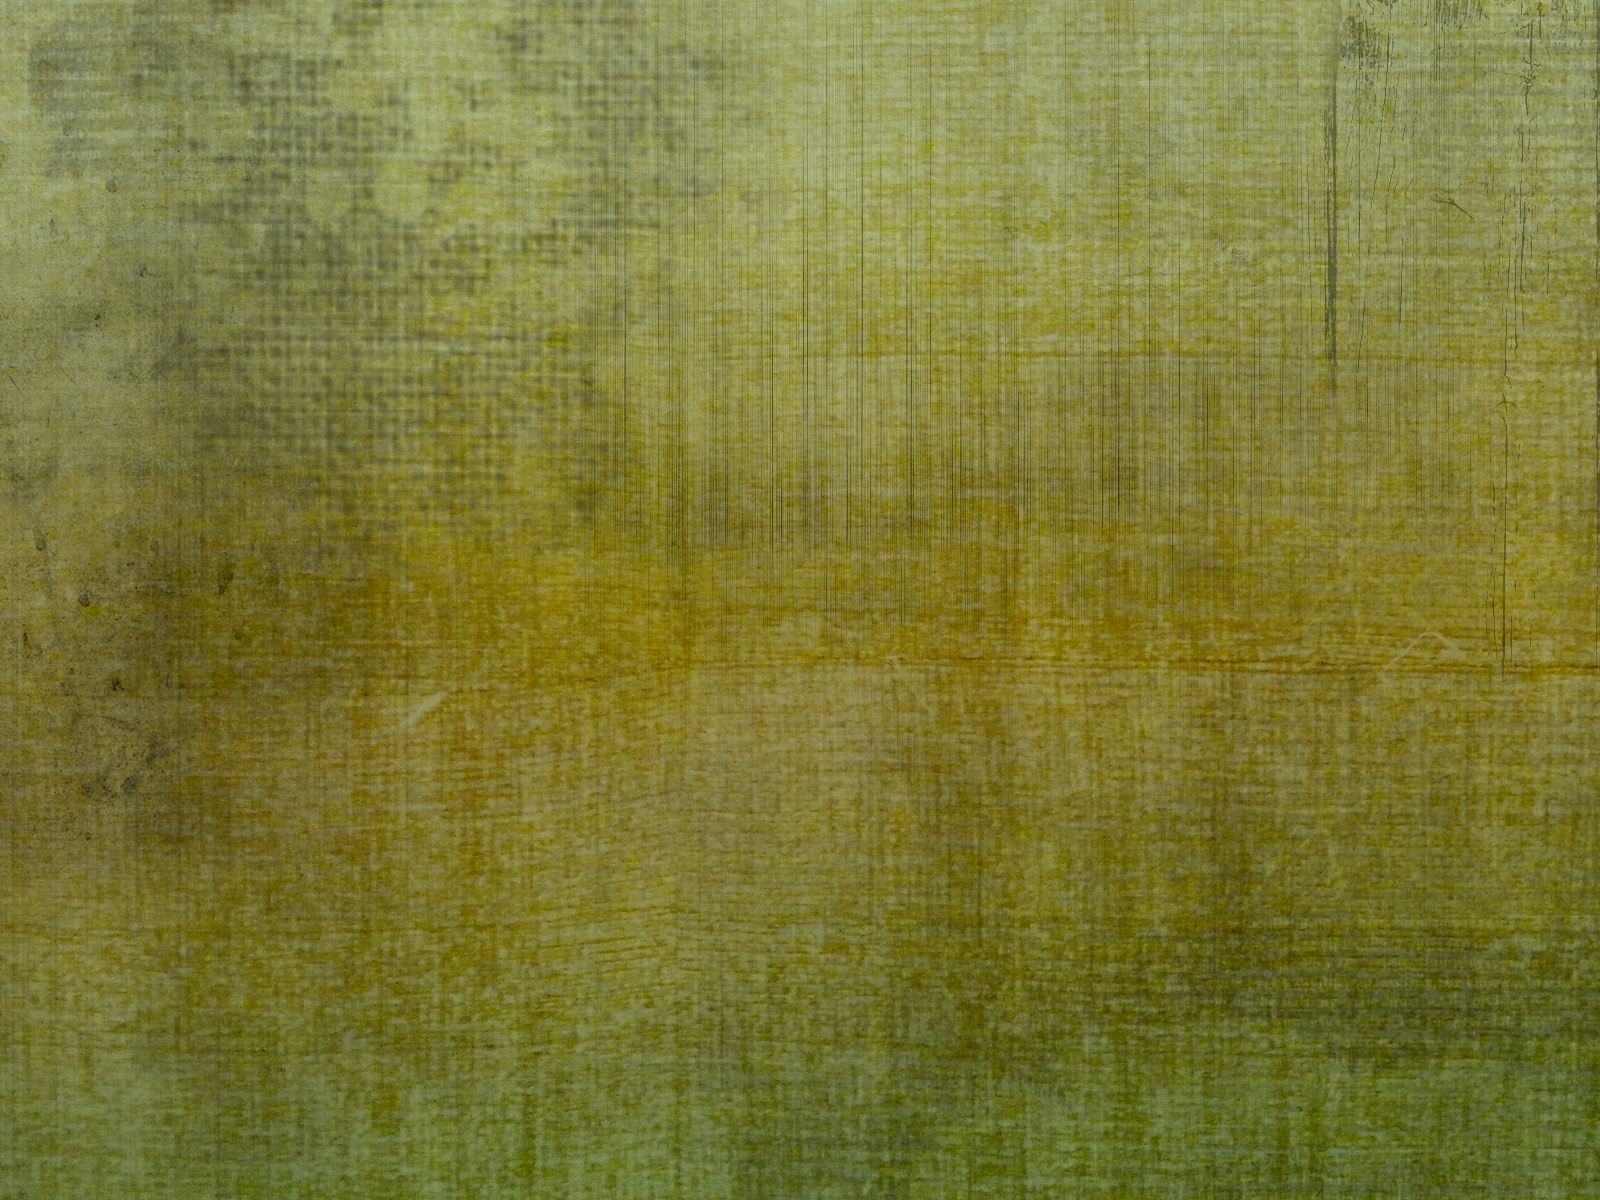 5 Completely Free Grunge Textures